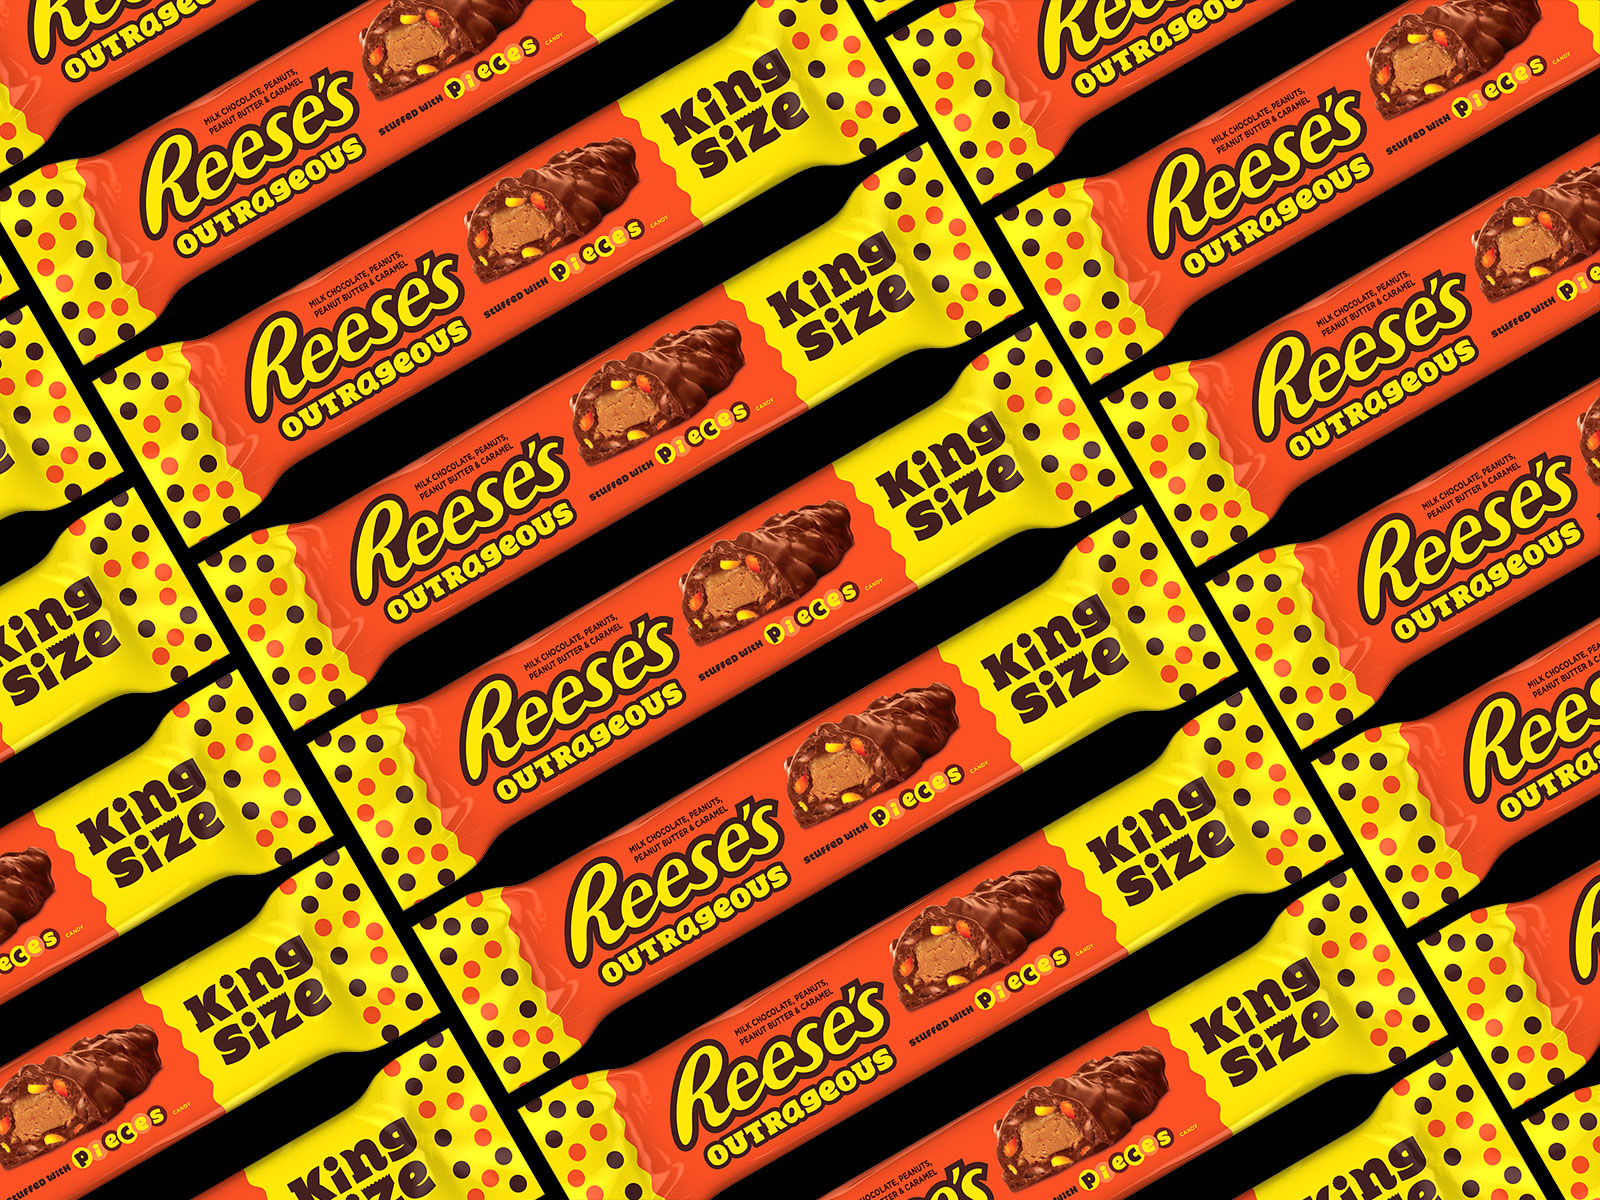 Reese's 'Outrageous' Bar Is Packed With Reese's Pieces and Peanut Butter